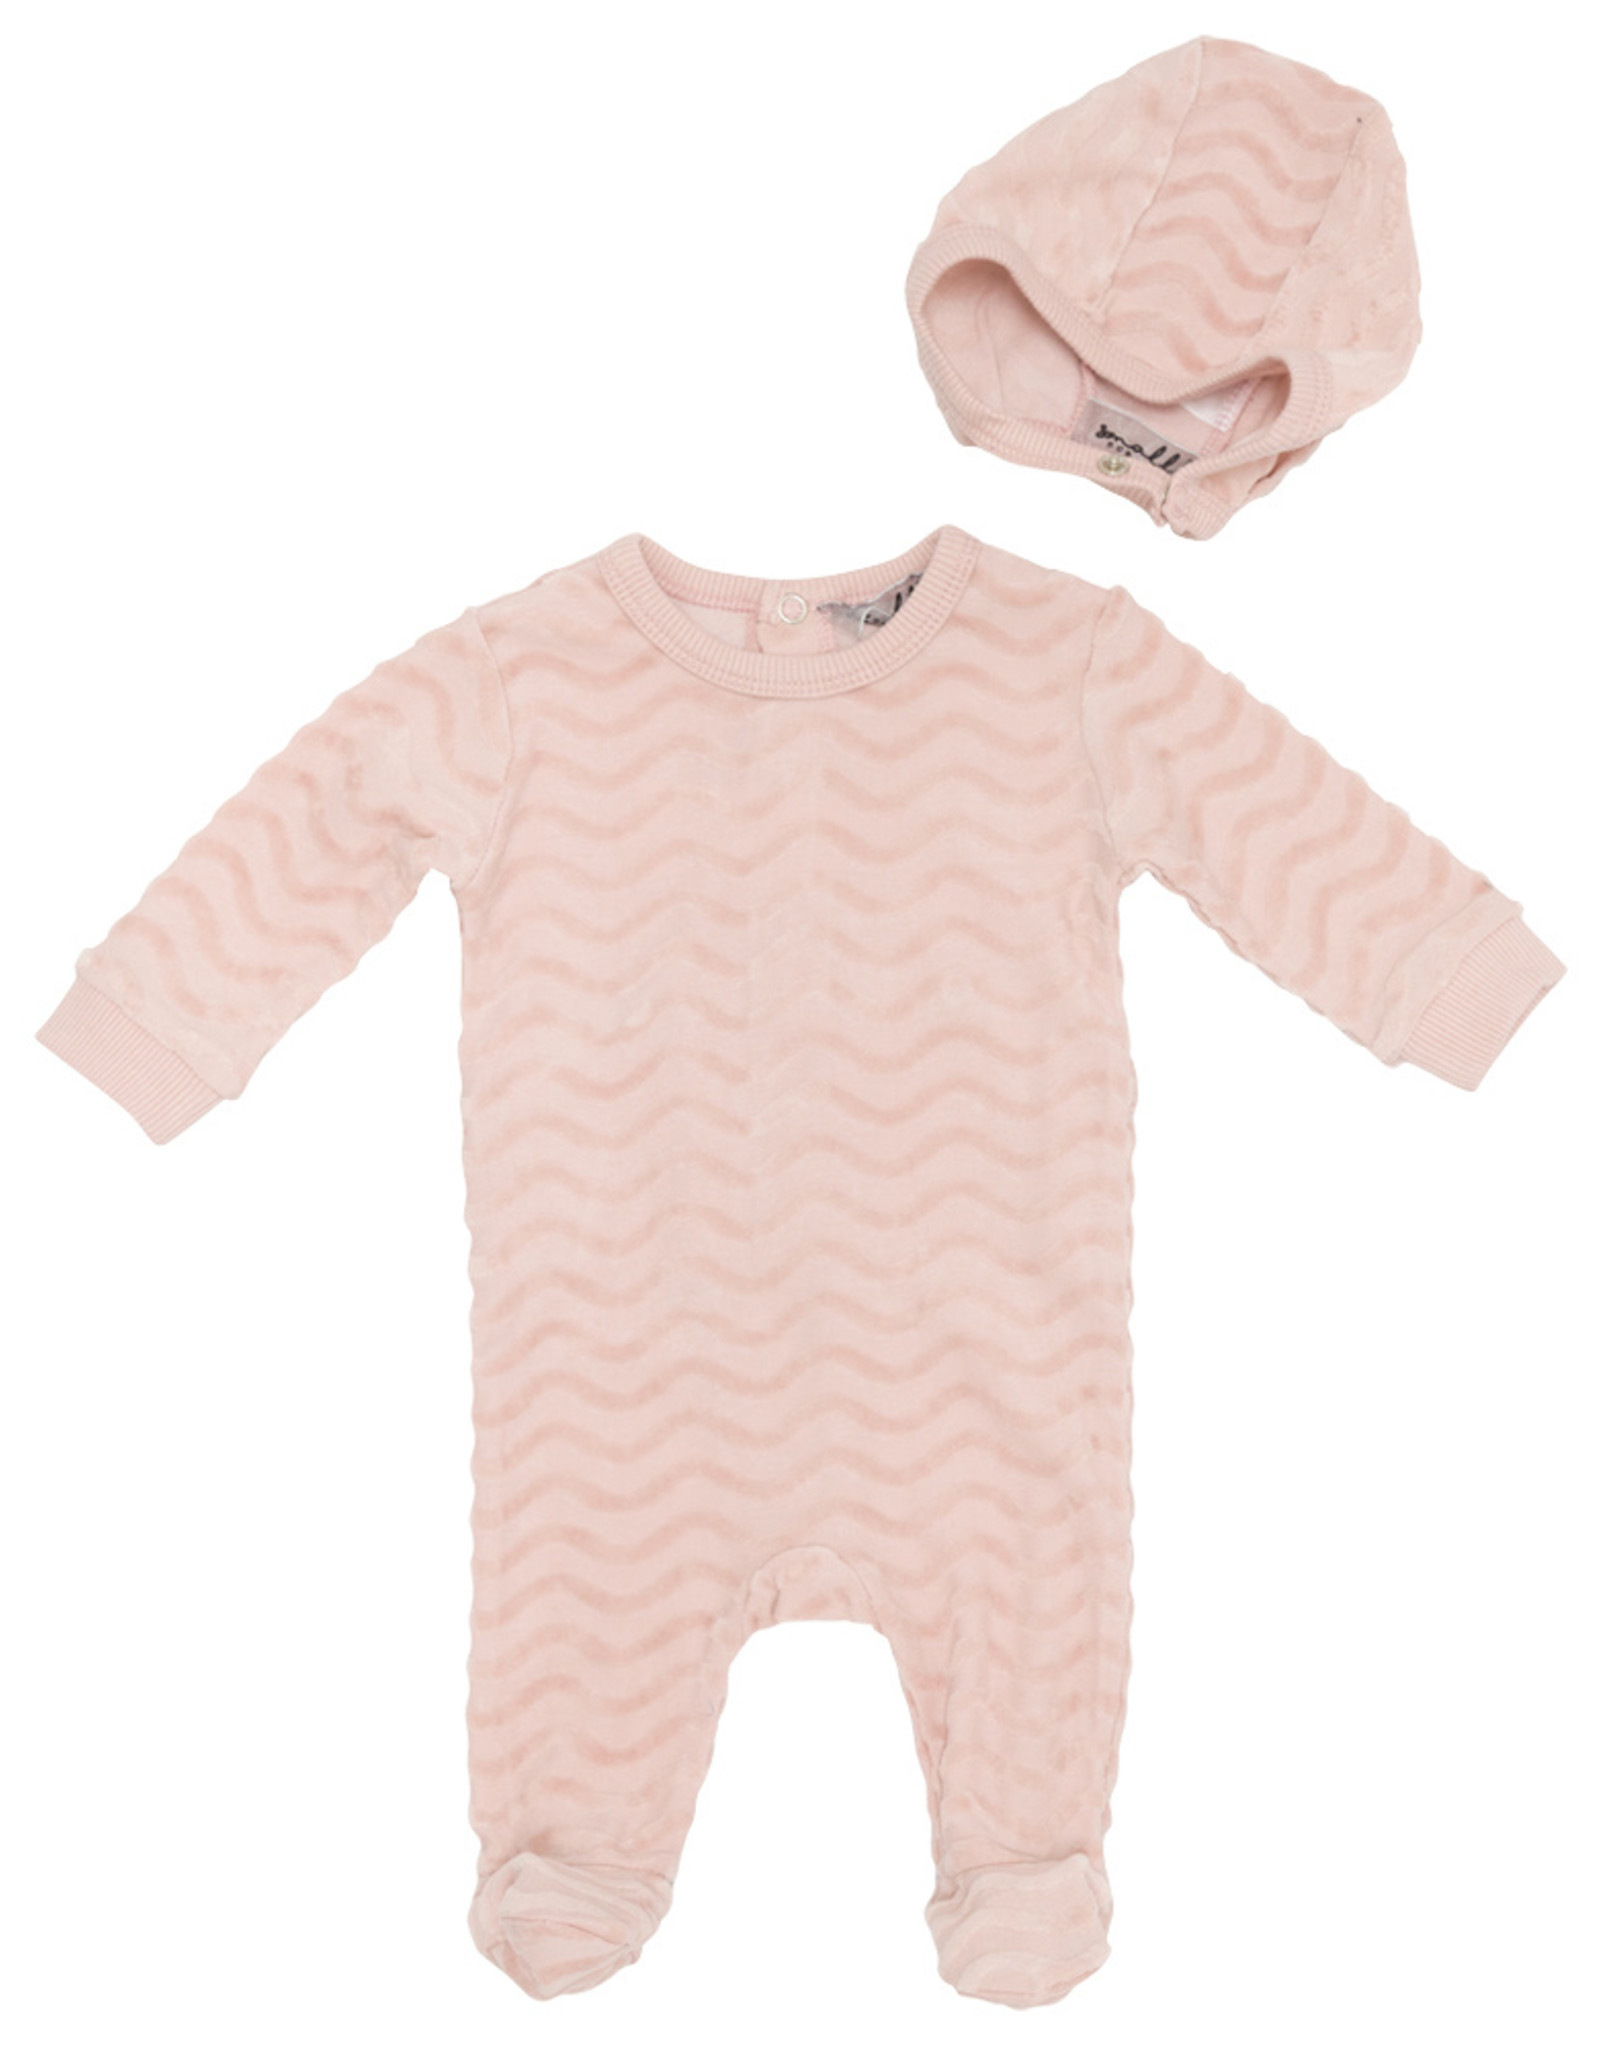 Small Moments Small Moments Wavy Footie with Bonnet